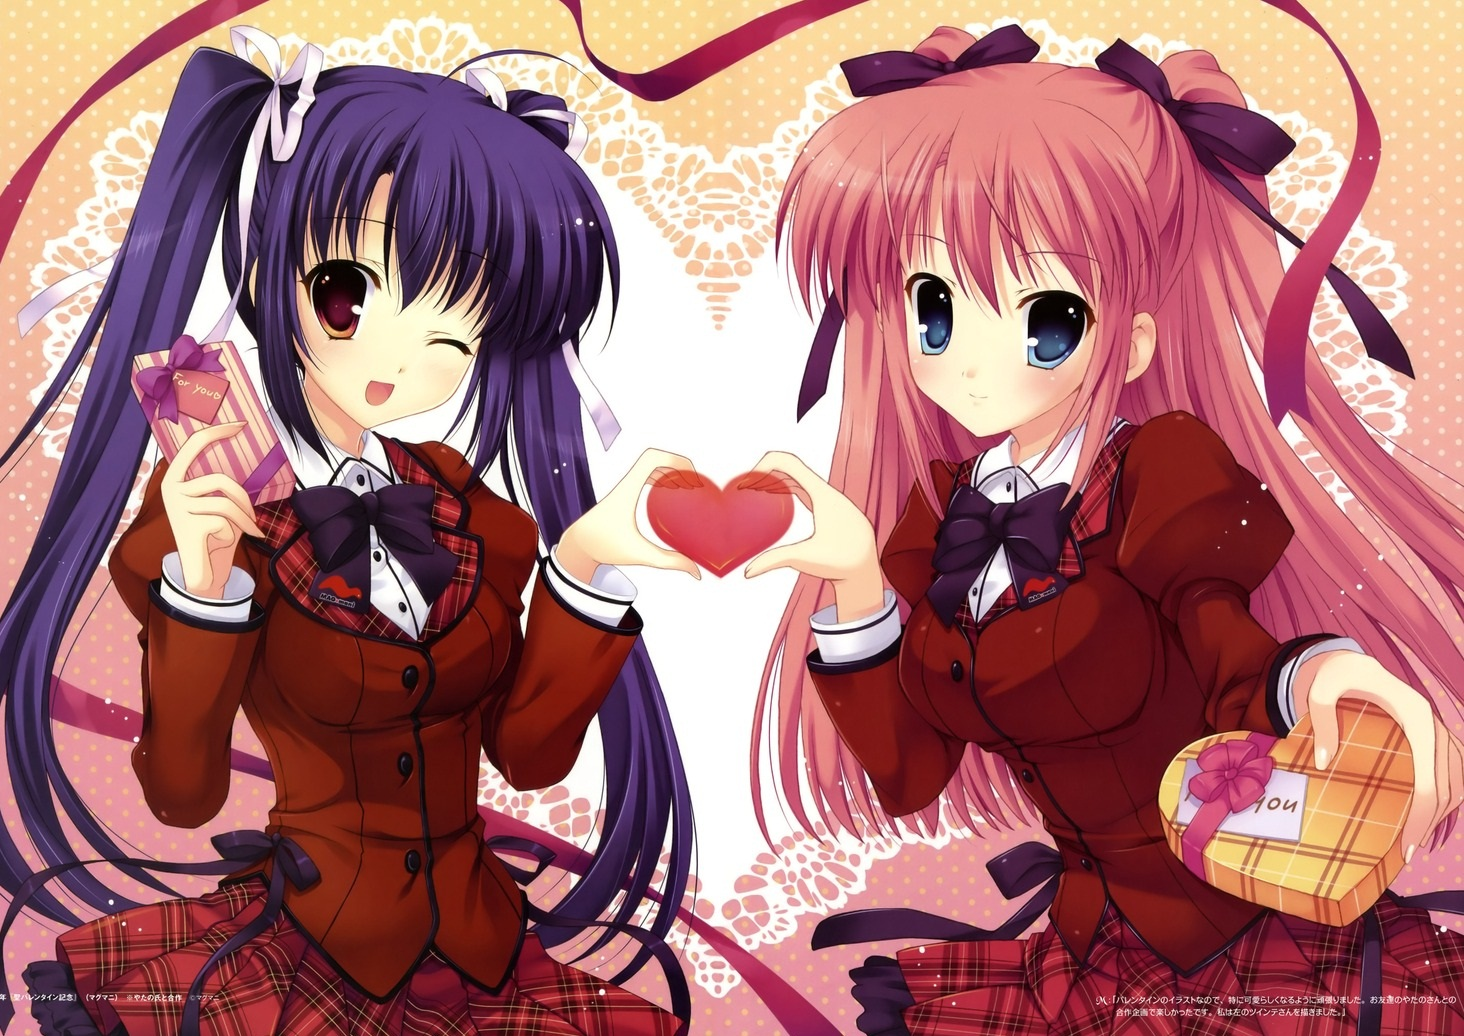 Free Download In This Anime Wallpaper Two Cute Anime Girls